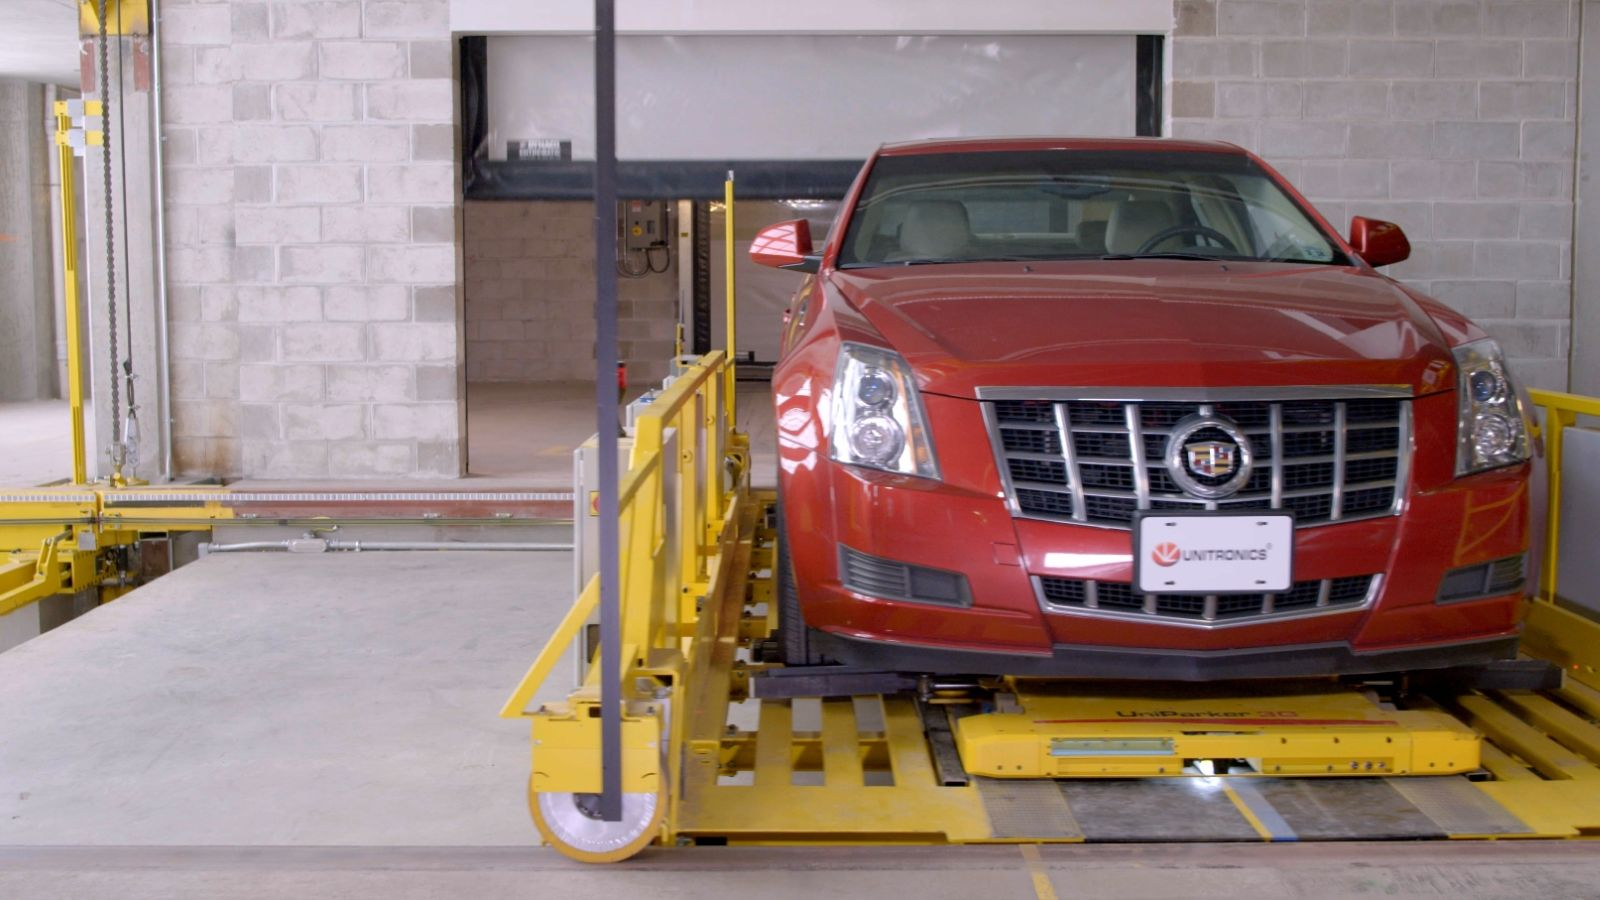 The robots use automated elevators to bring cars to available spots. Photo: courtesy